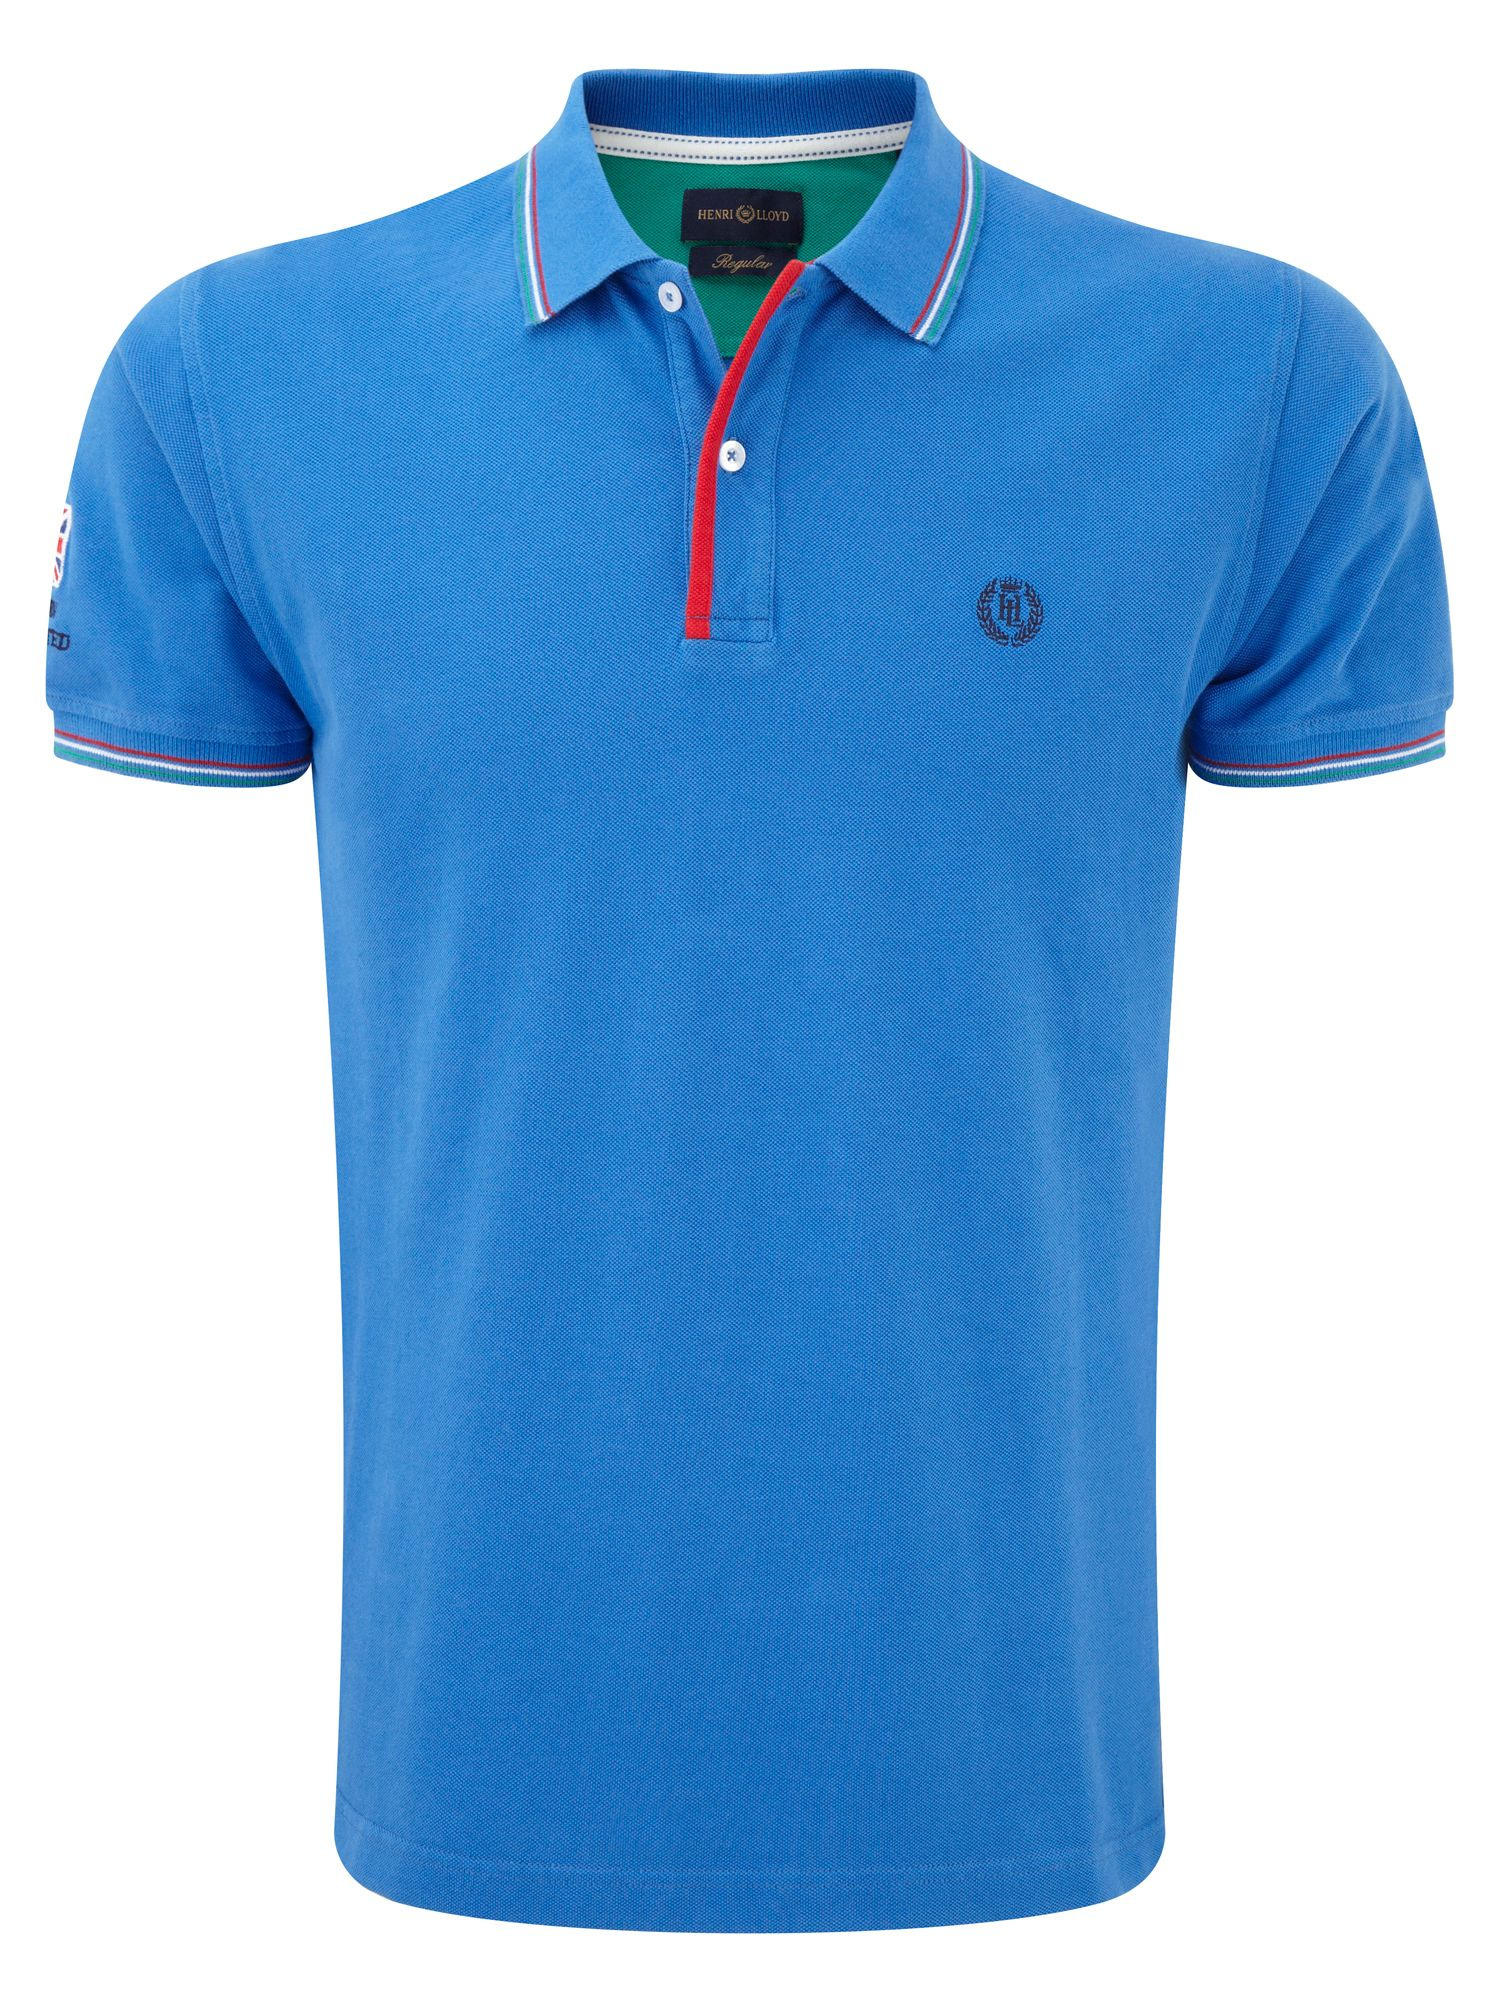 Haaken regular polo